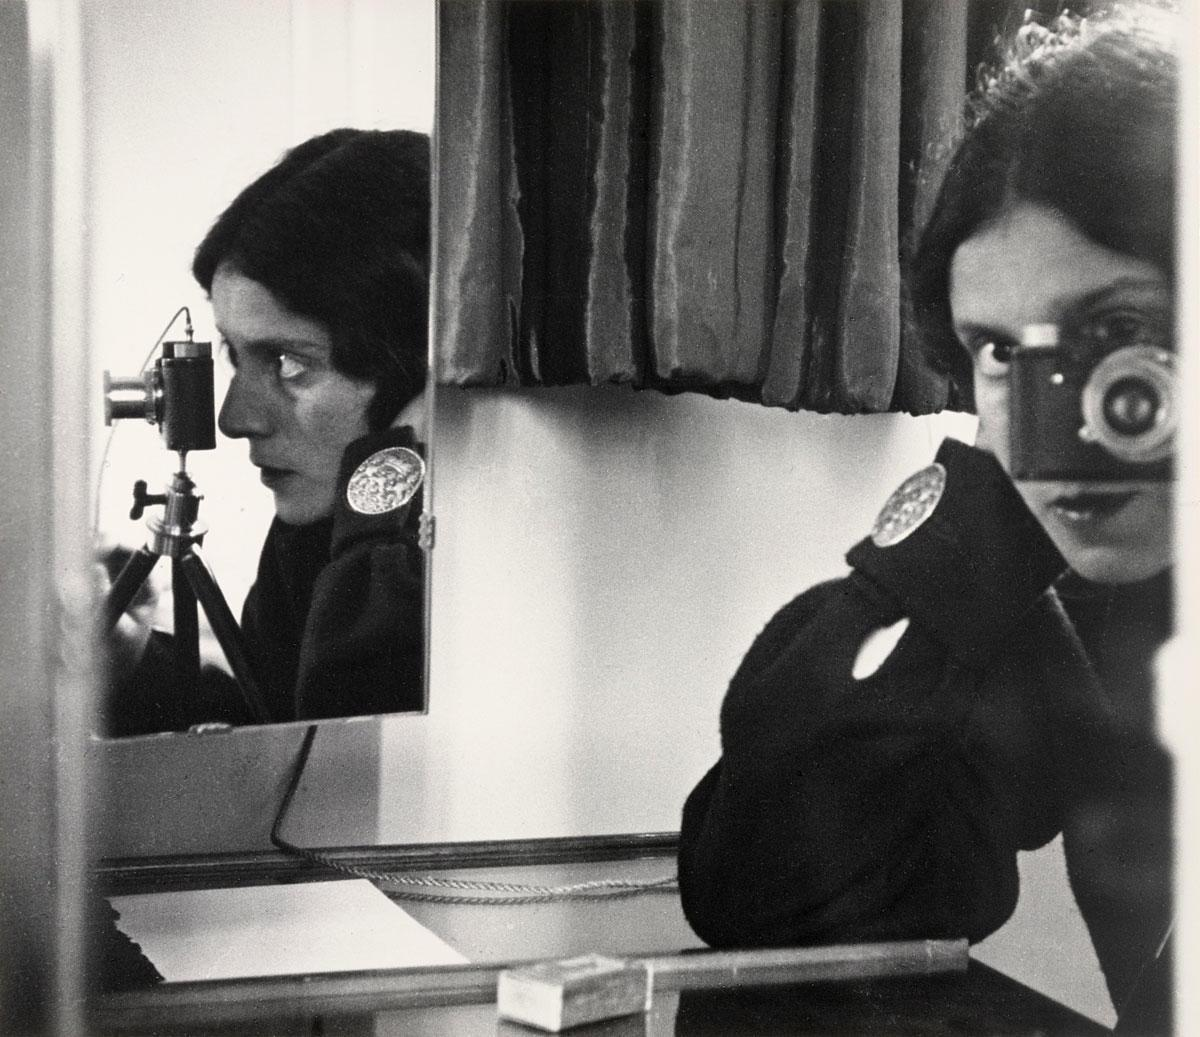 Ilse Bing, Self-Portrait, 1931